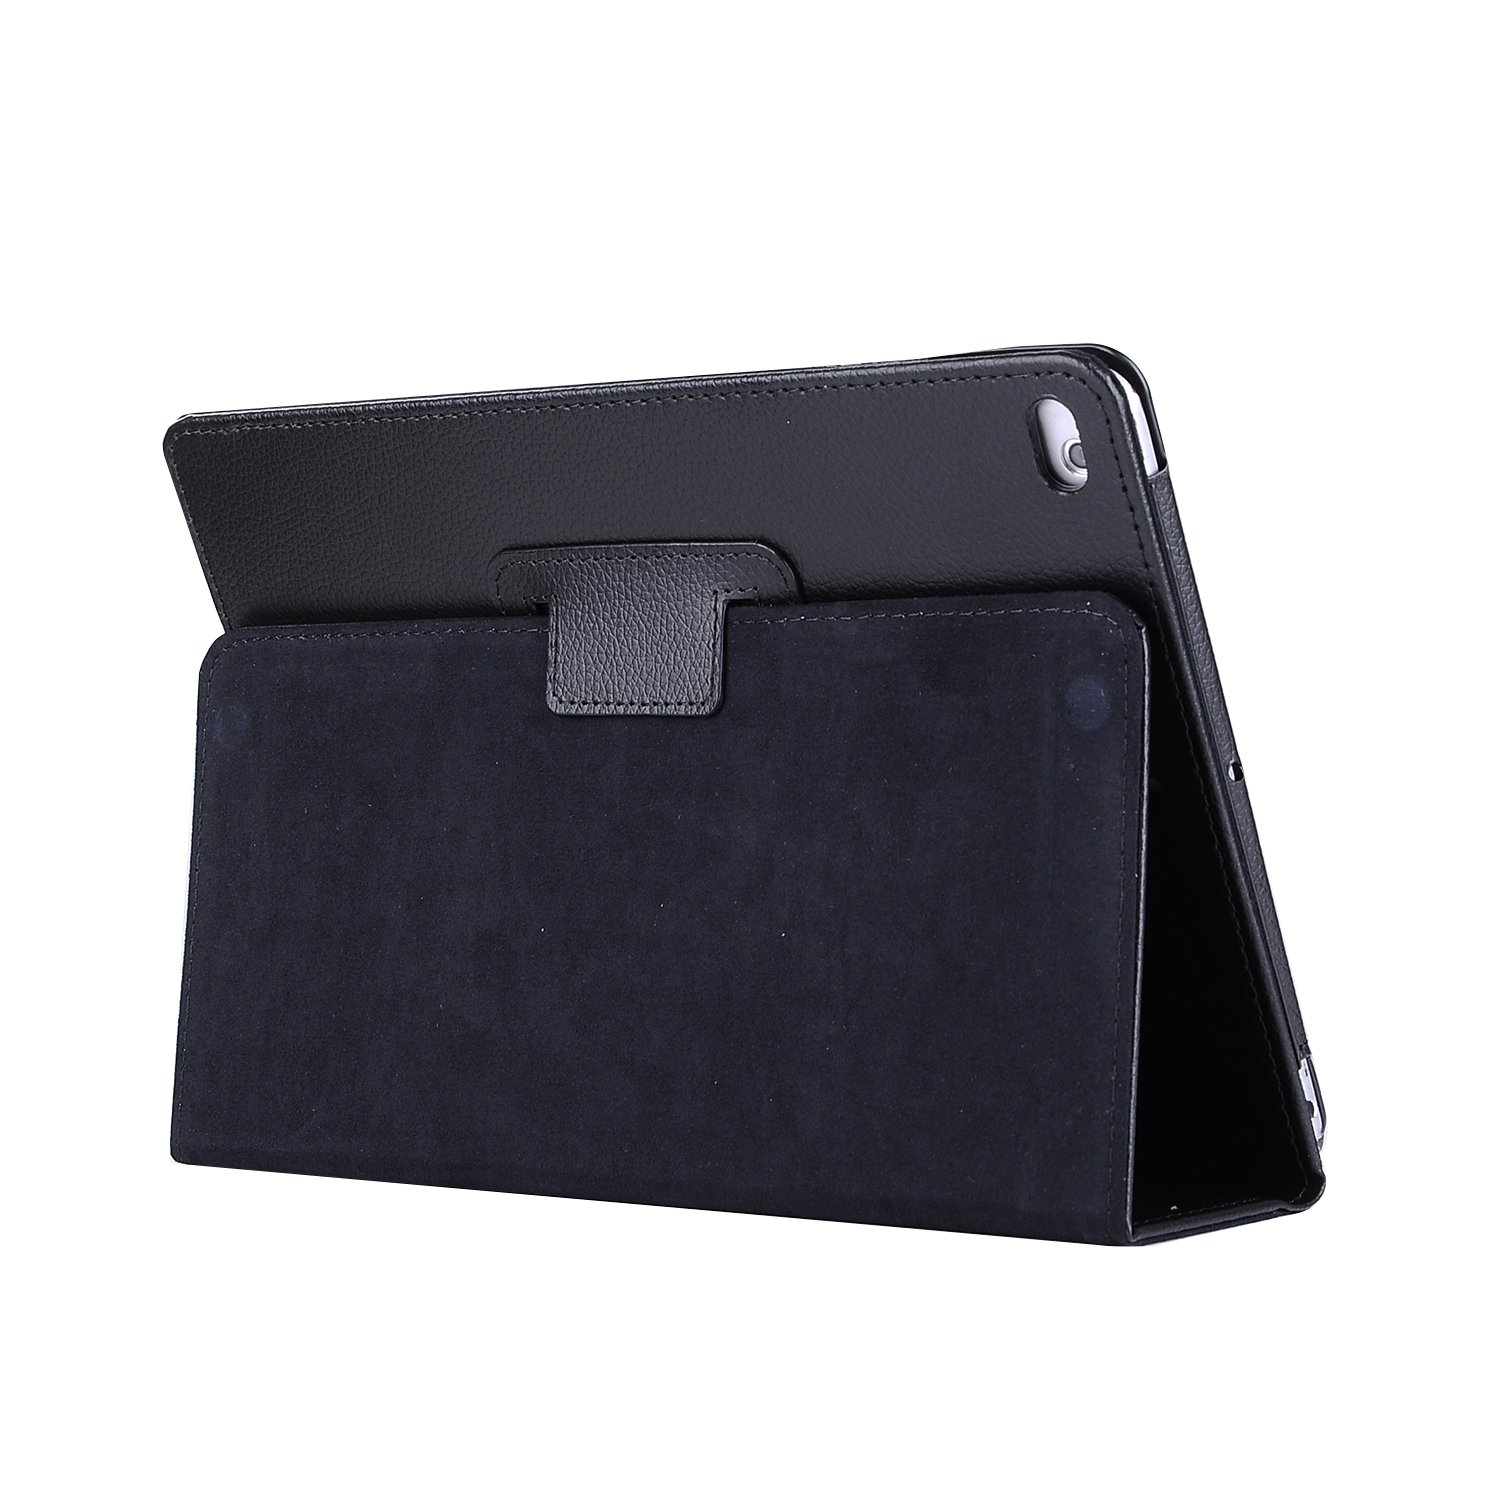 for iPad 10.2 Black Black For Apple iPad 10 2 Case 2019 A2197 A2200 A2198 A2232 Foilo Stand PU Leather Cover